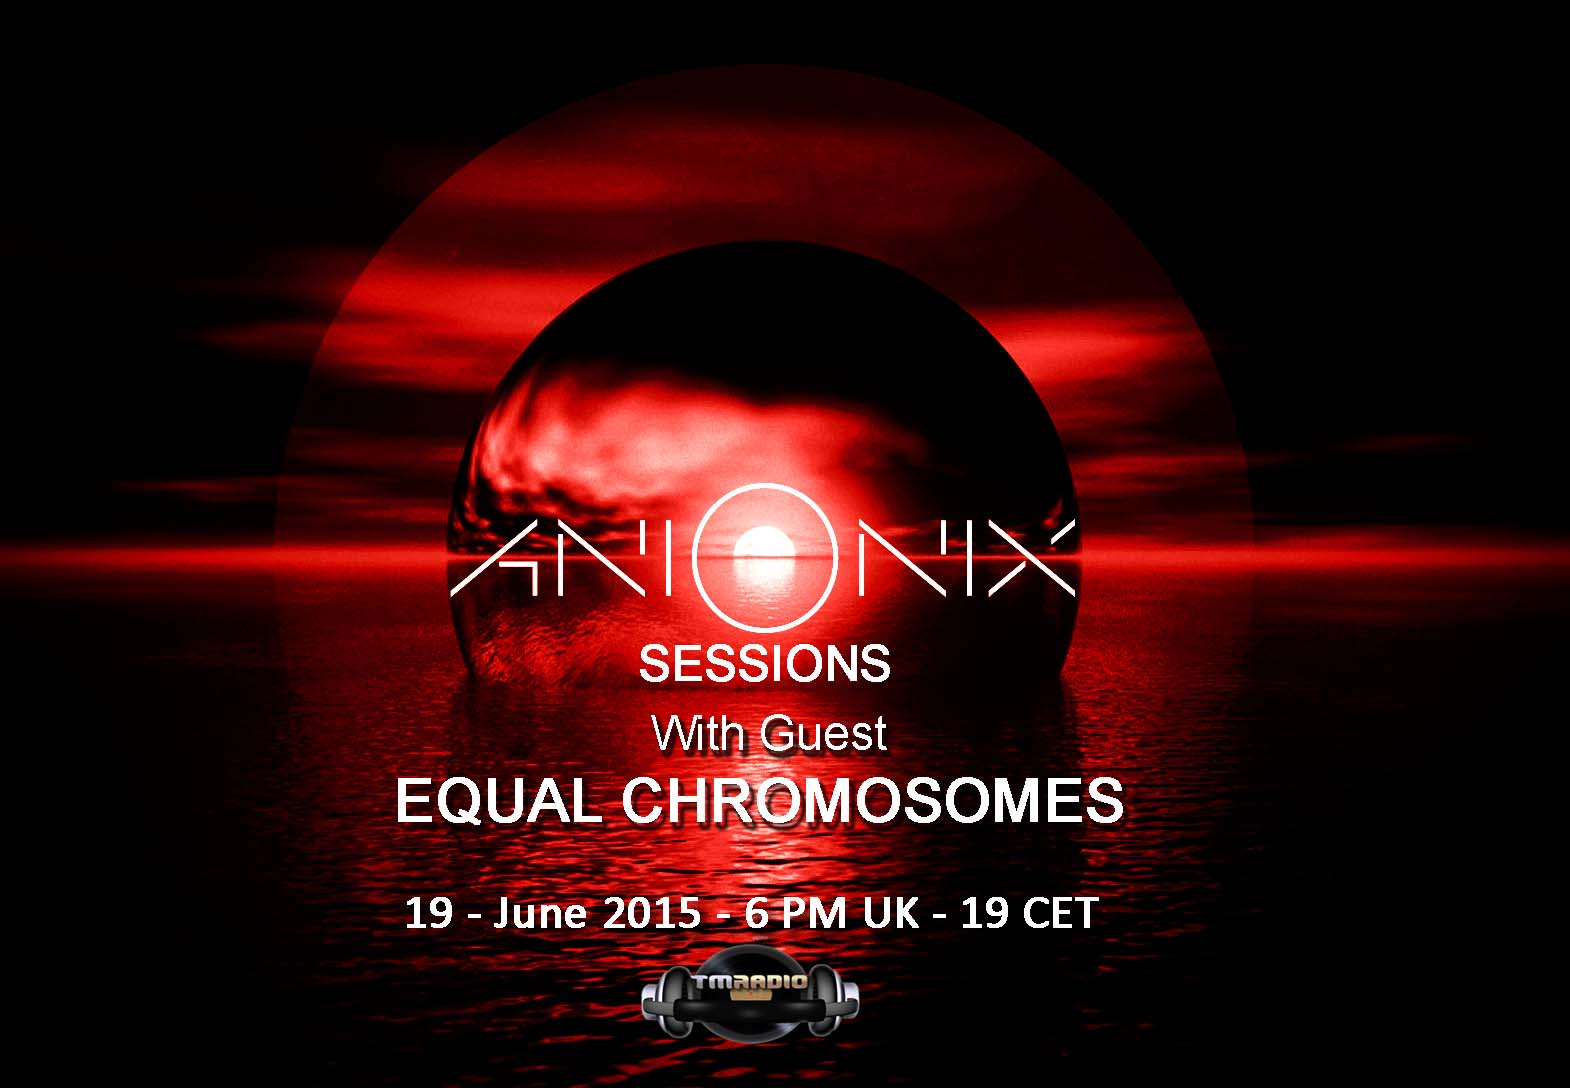 download → Ani Onix & Dtekt - Ani Onix Sessions 001 on TM RADIO [GRAND OPENING SHOW] - December 2014